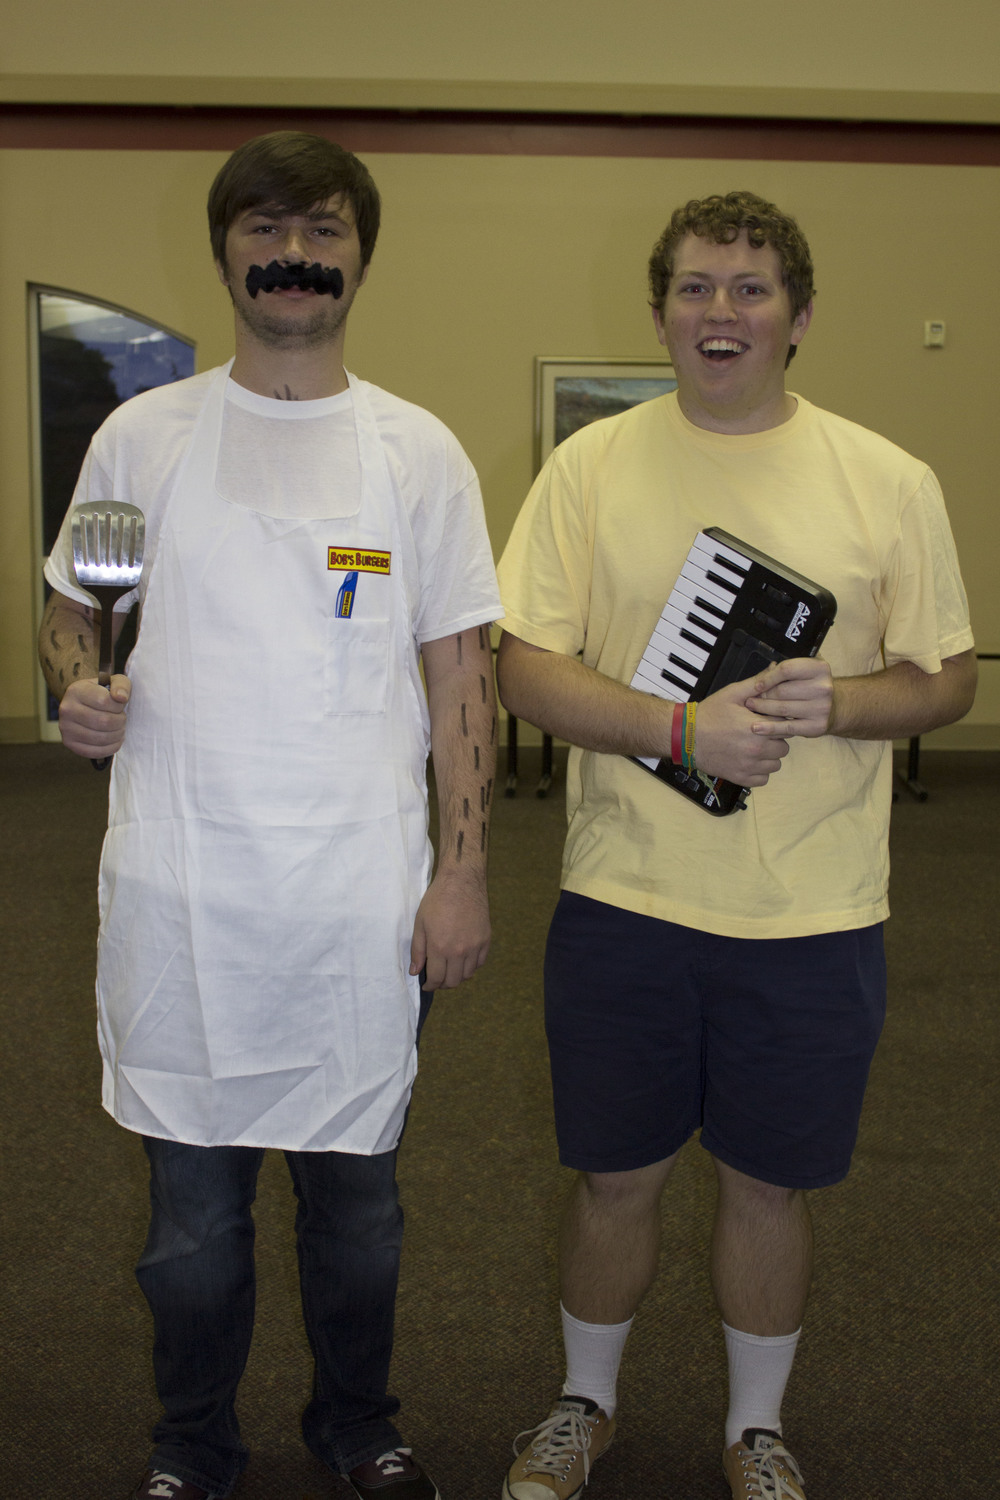 Junior Max Millsaps and Daniel Reeves dress up as Bob and Jimmy from Bob's Burgers.